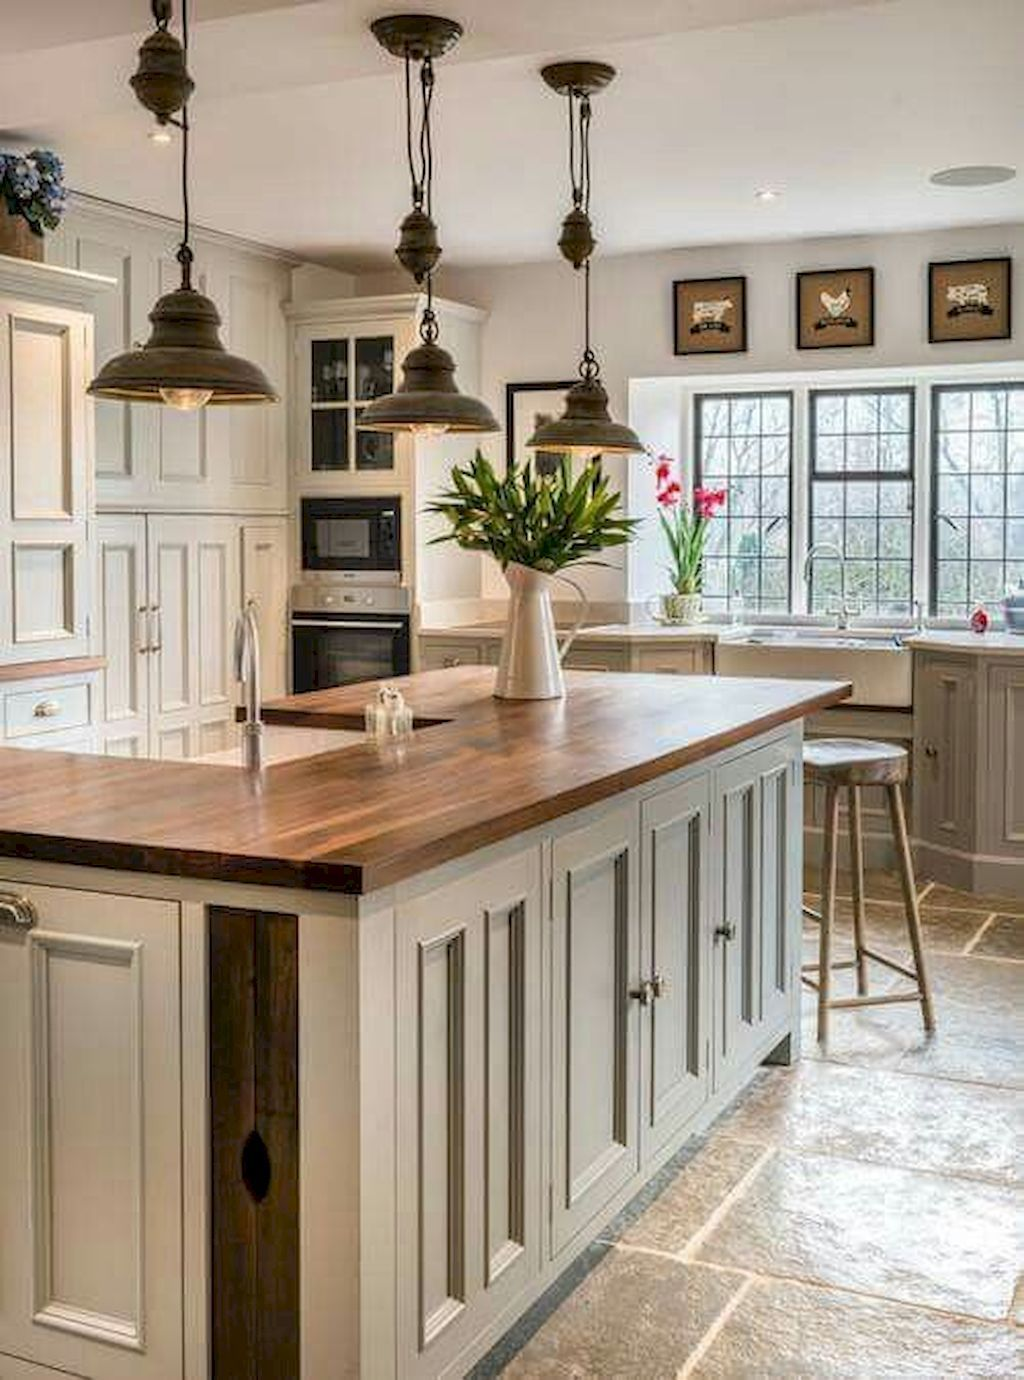 Nice 40 Rustic Modern Farmhouse Kitchen Design Ideas Https